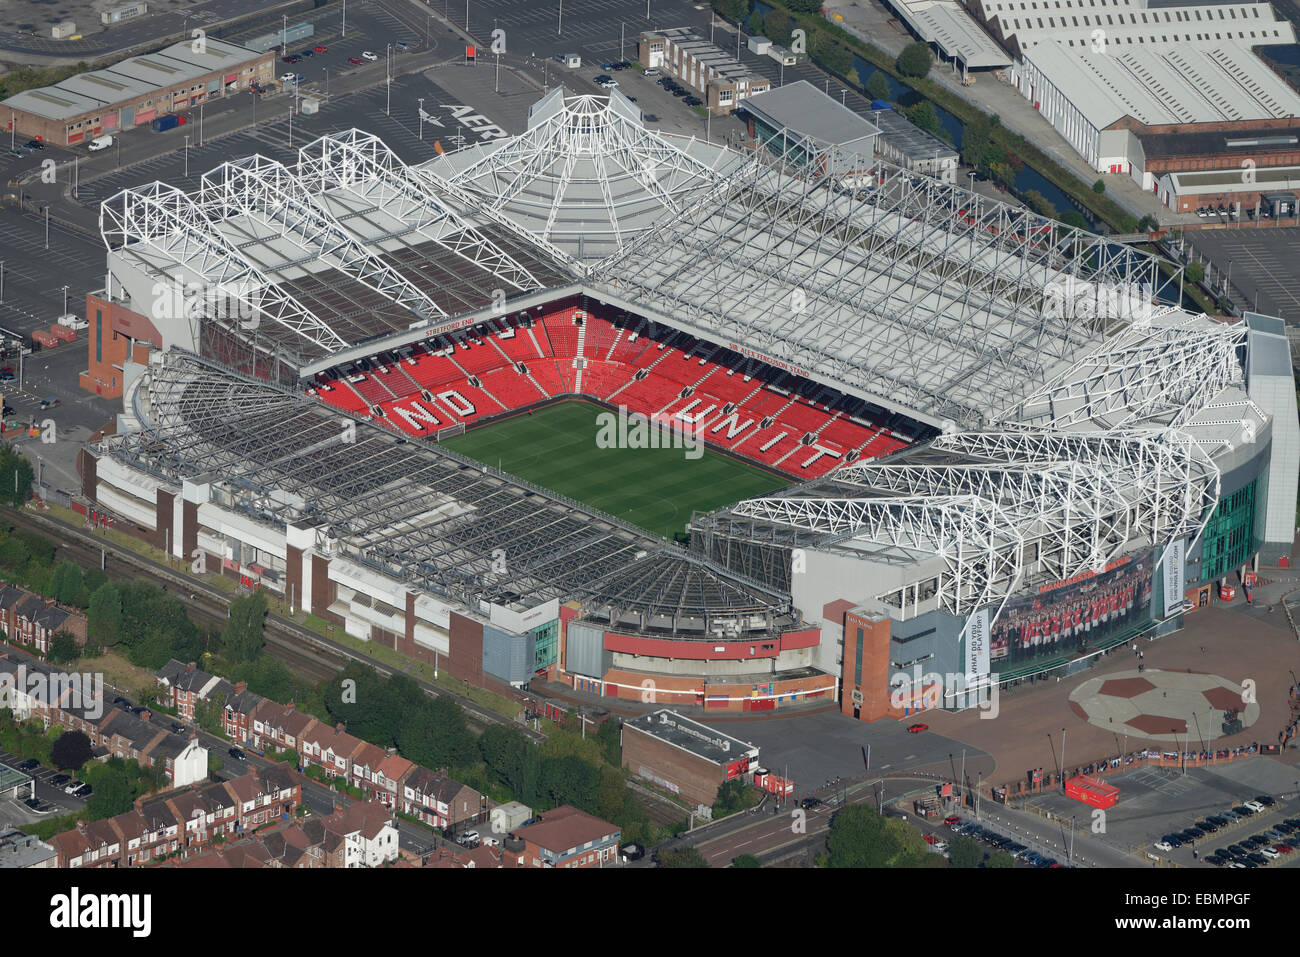 An aerial view of Old Trafford football stadium, home of Manchester United FC - Stock Image